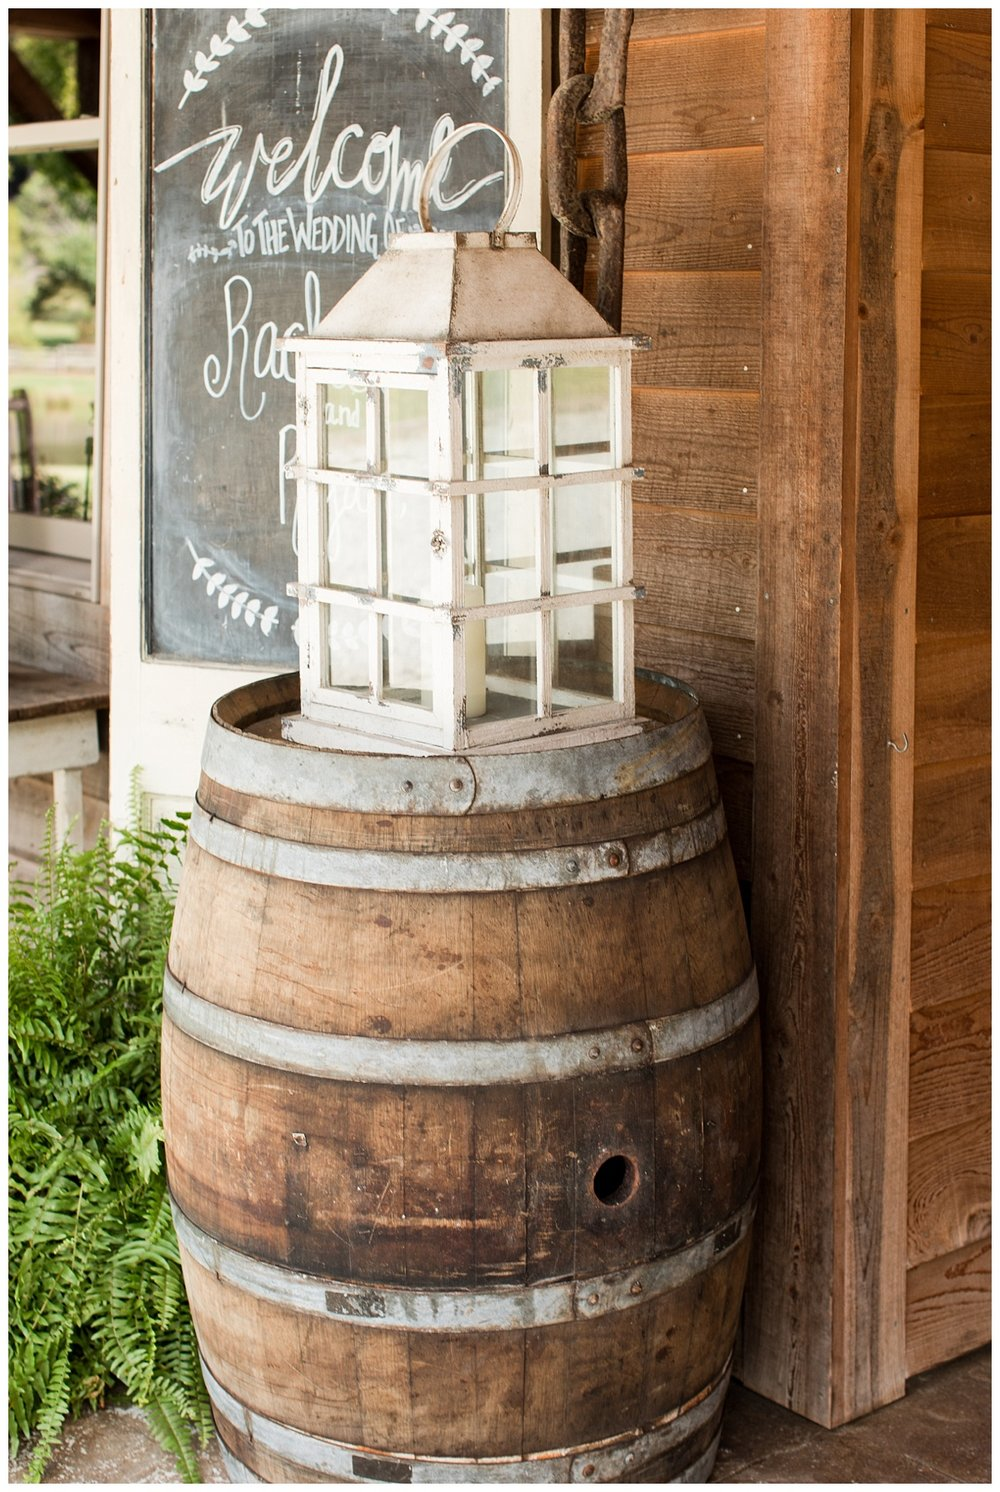 McMahon_Walters Barn_Blog_Abby Breaux Photography-87.jpg